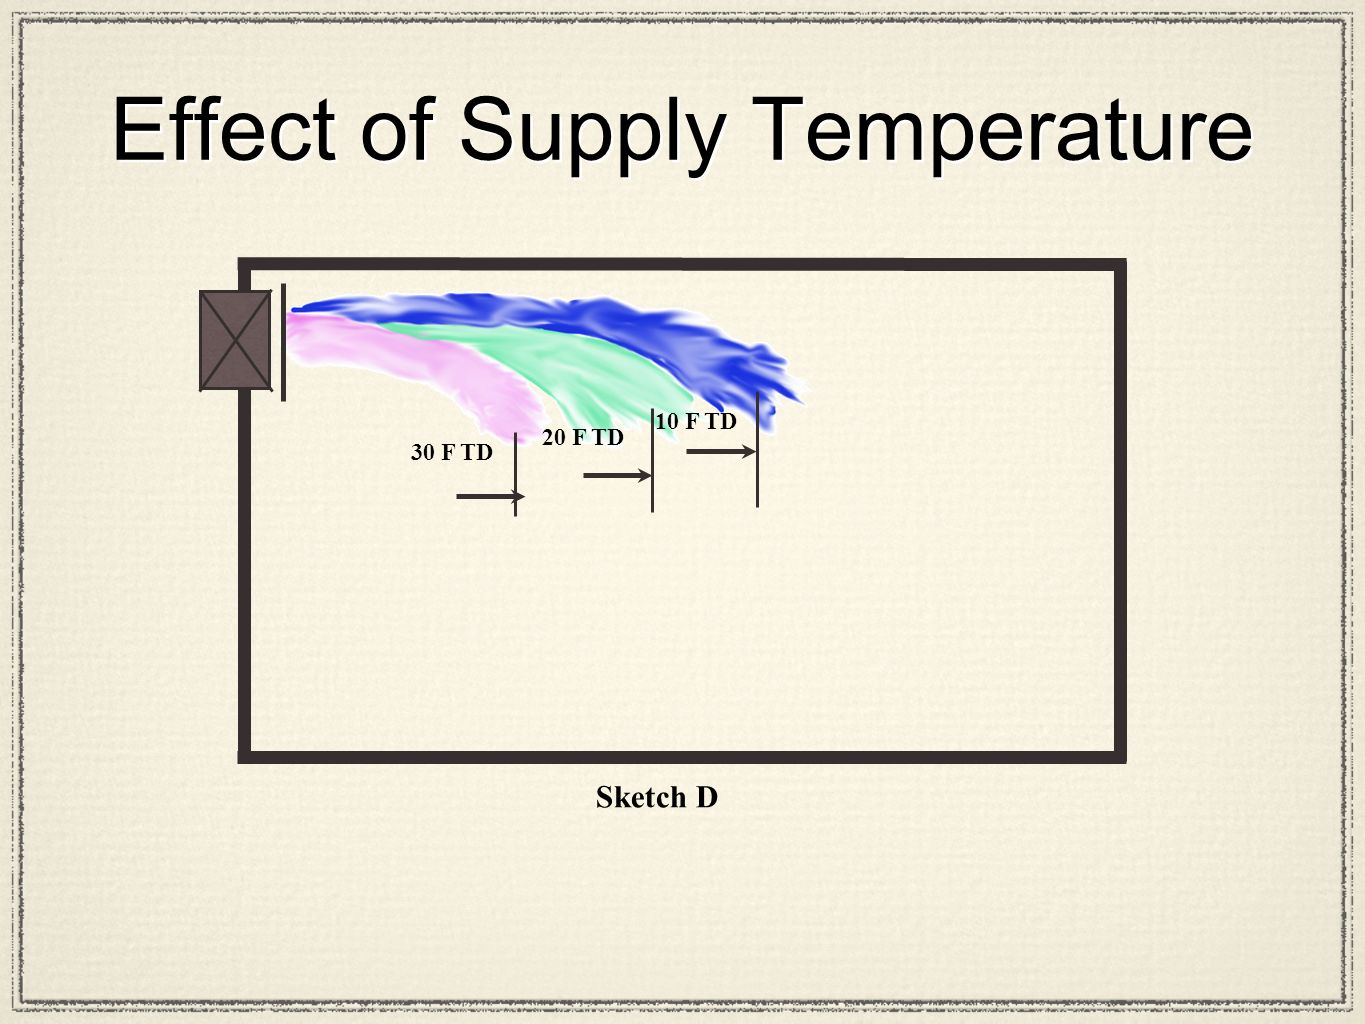 Sketch D 30 F TD 20 F TD 10 F TD Effect of Supply Temperature